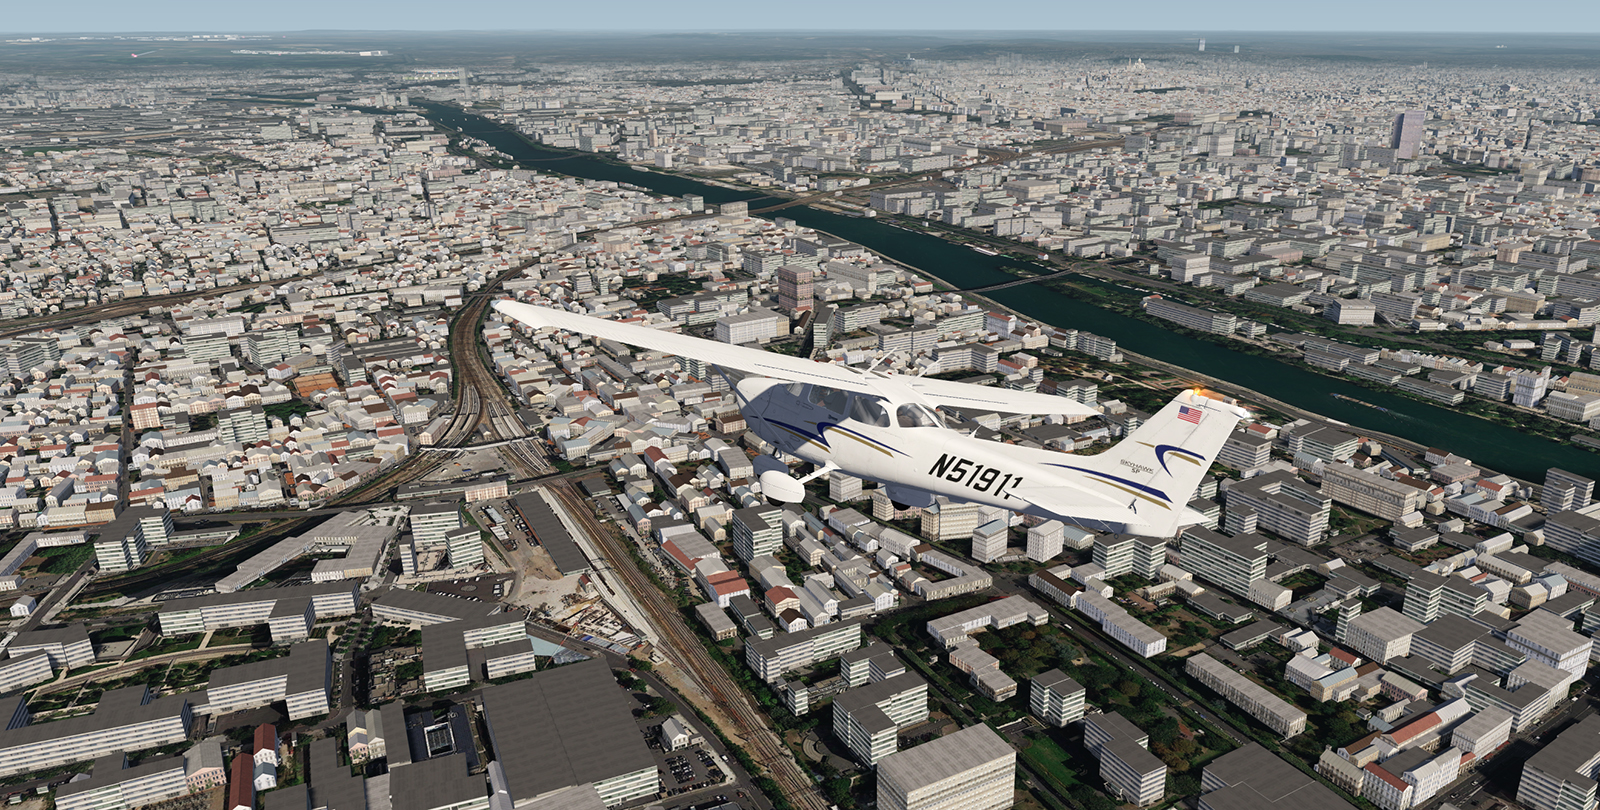 aerofly_fs_2_screenshot_32_20190920-0111